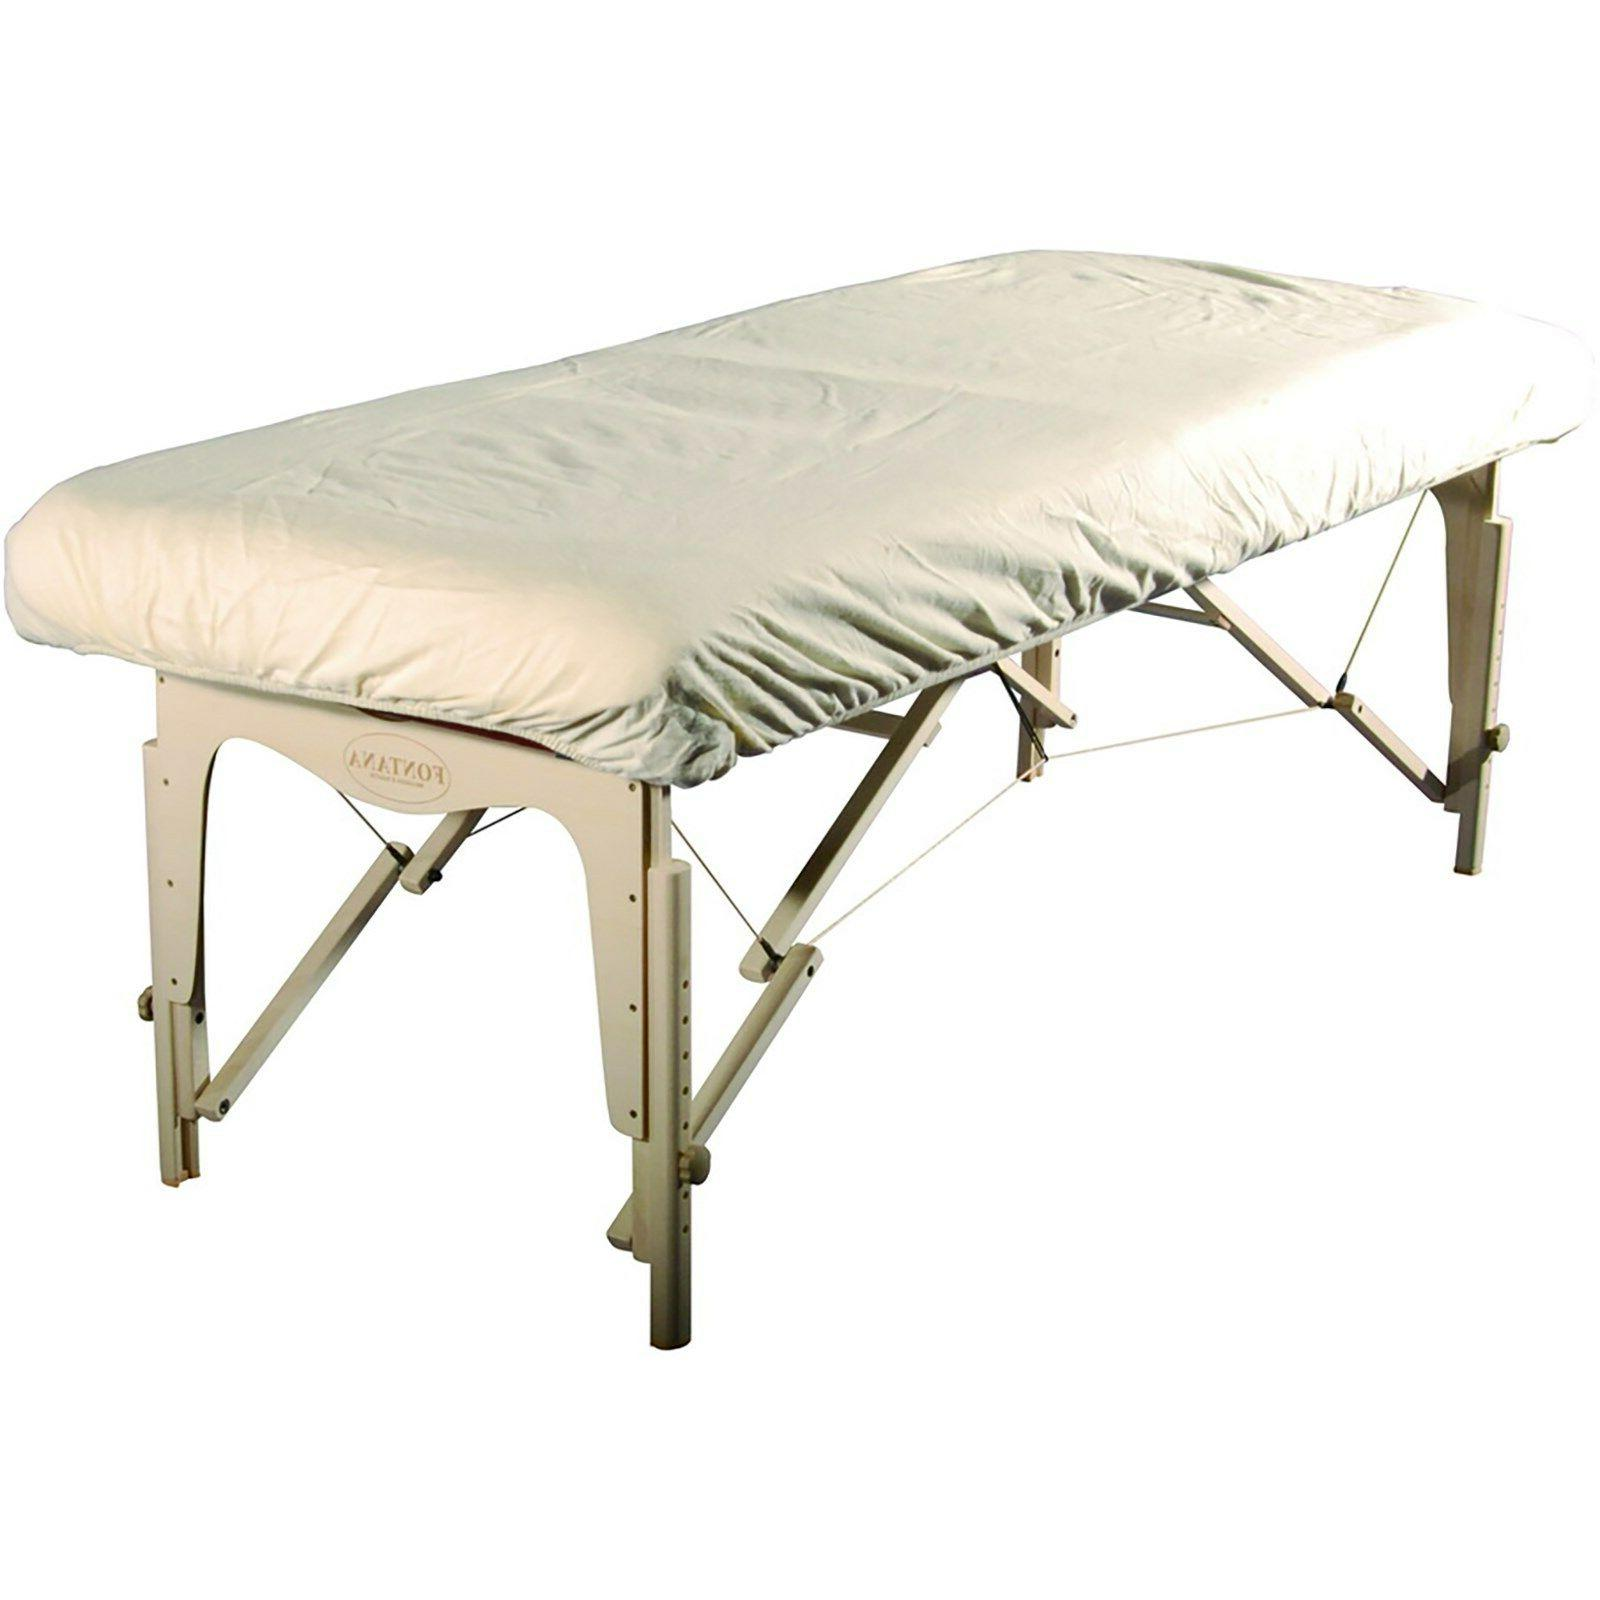 Master Massage Universal Size Cotton Natural Fitted Flannel